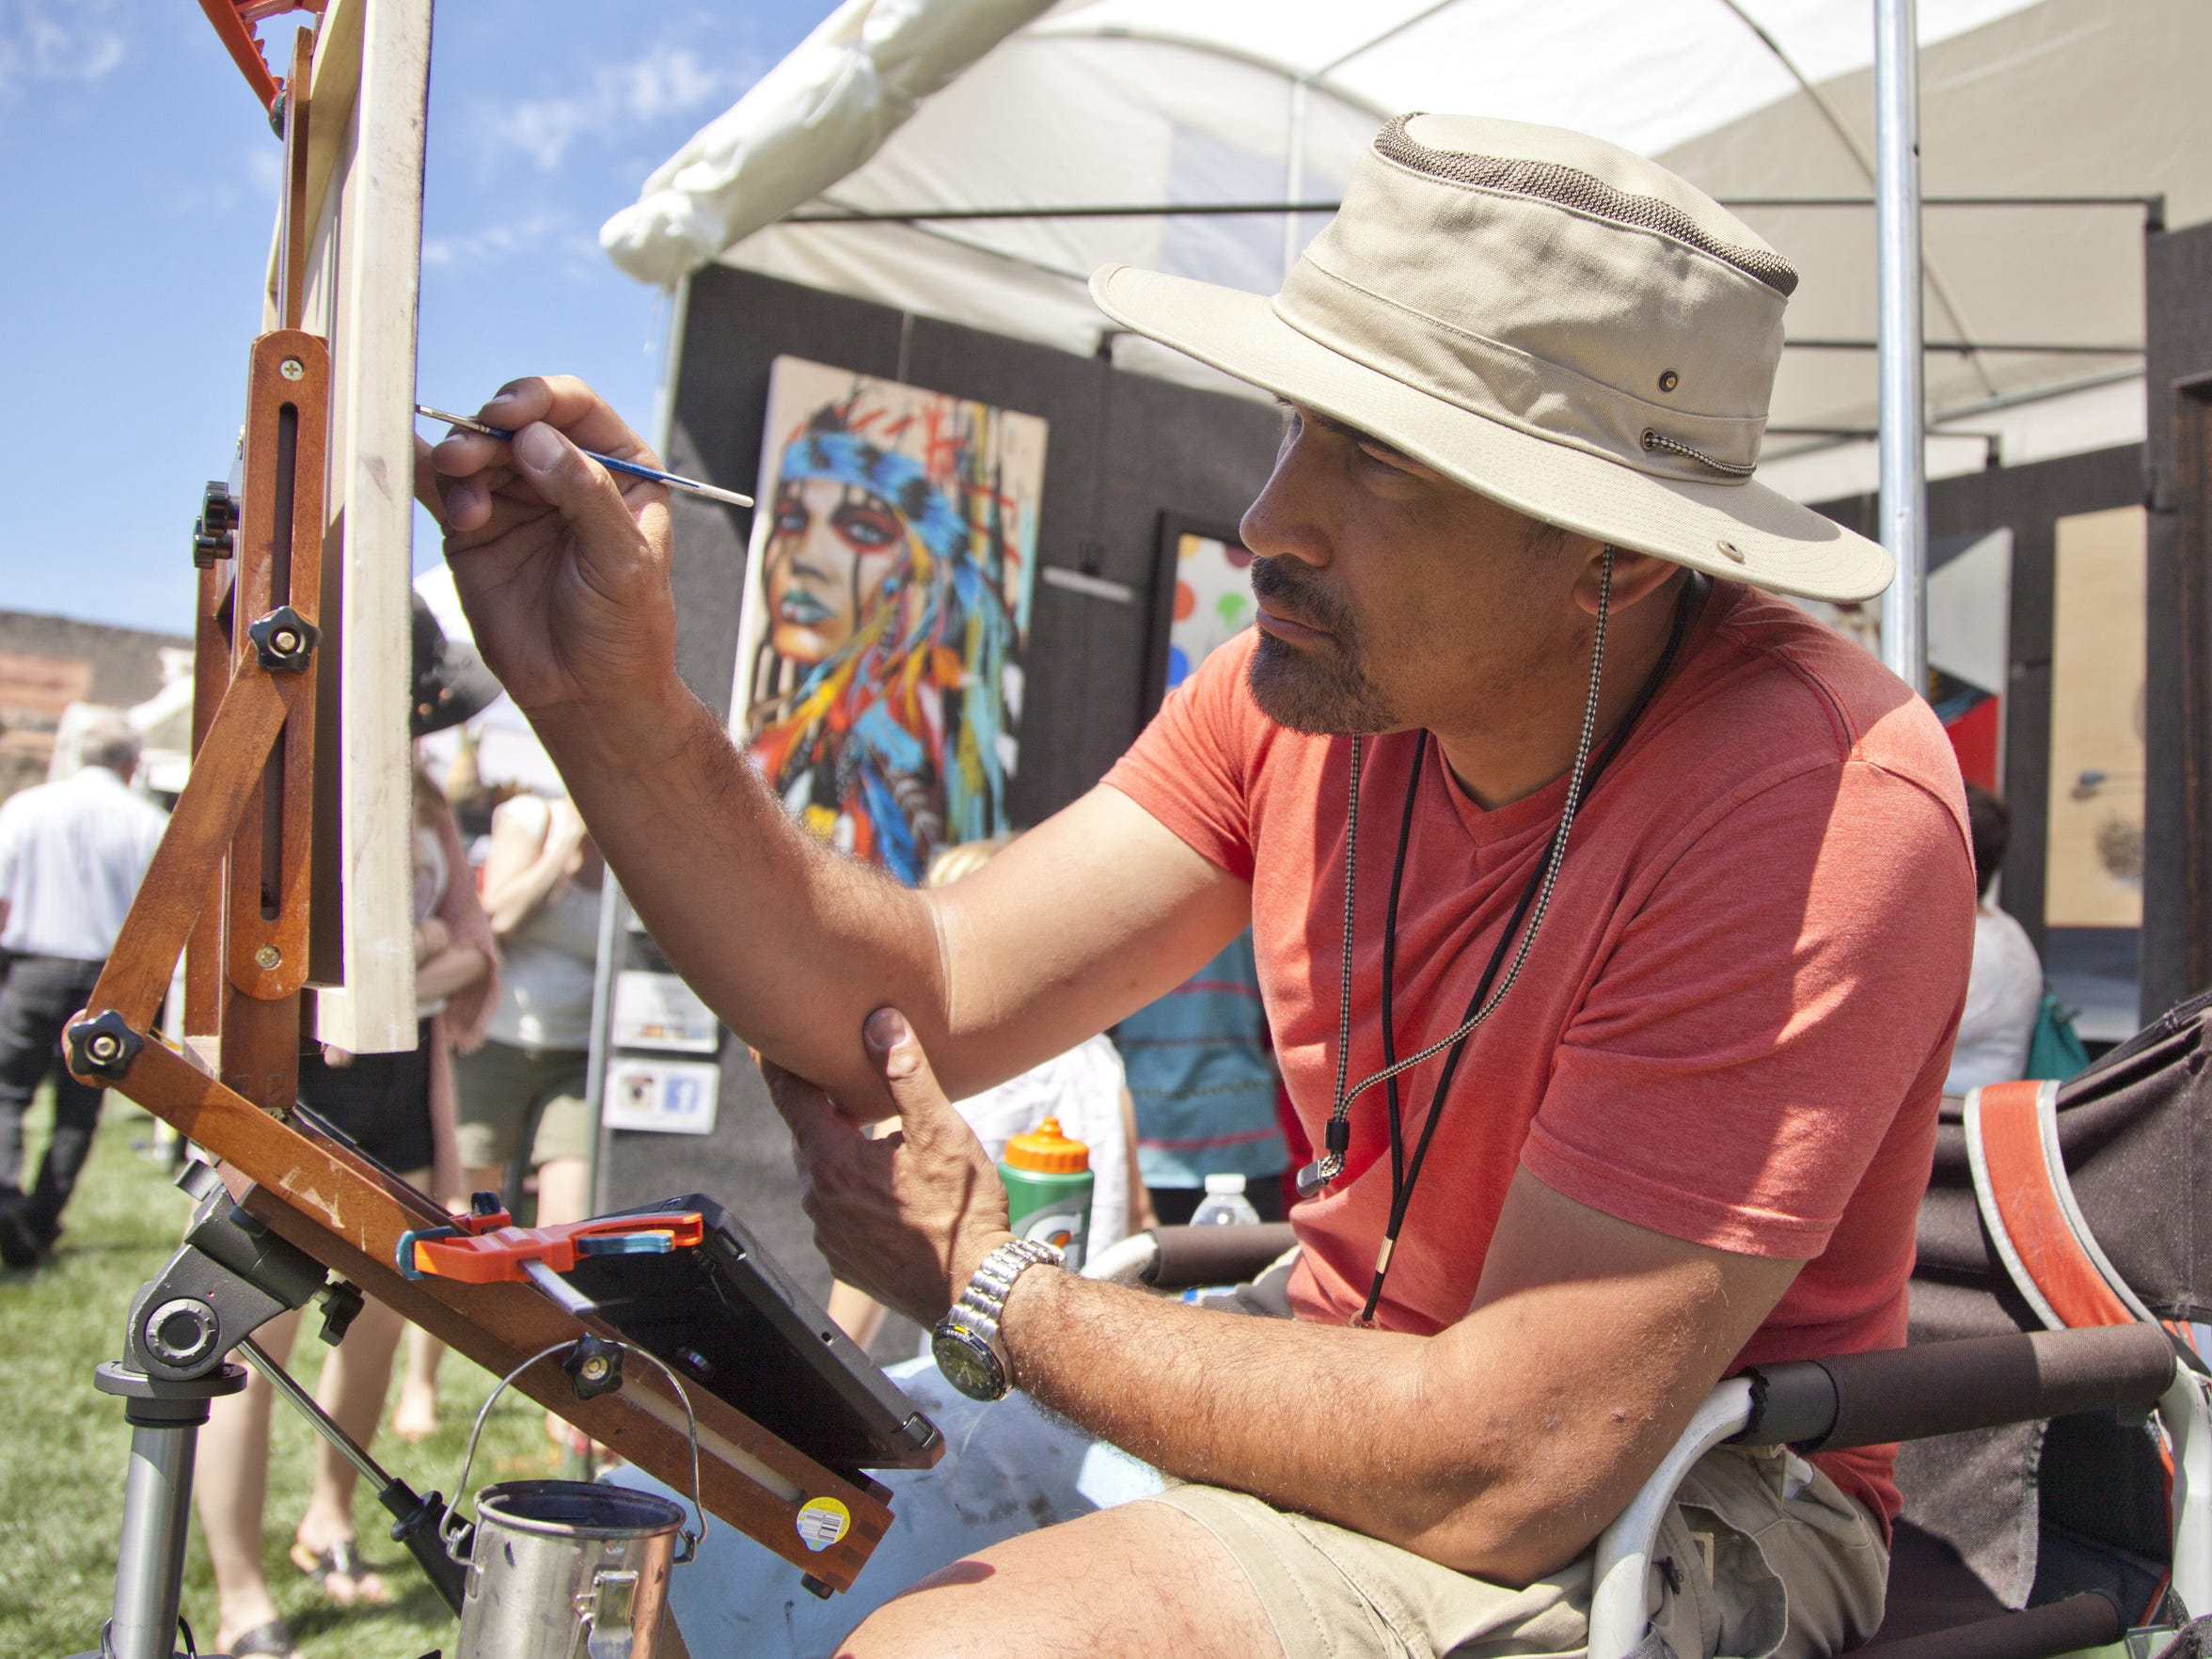 Artist Darrell Driver paints in front of his retail